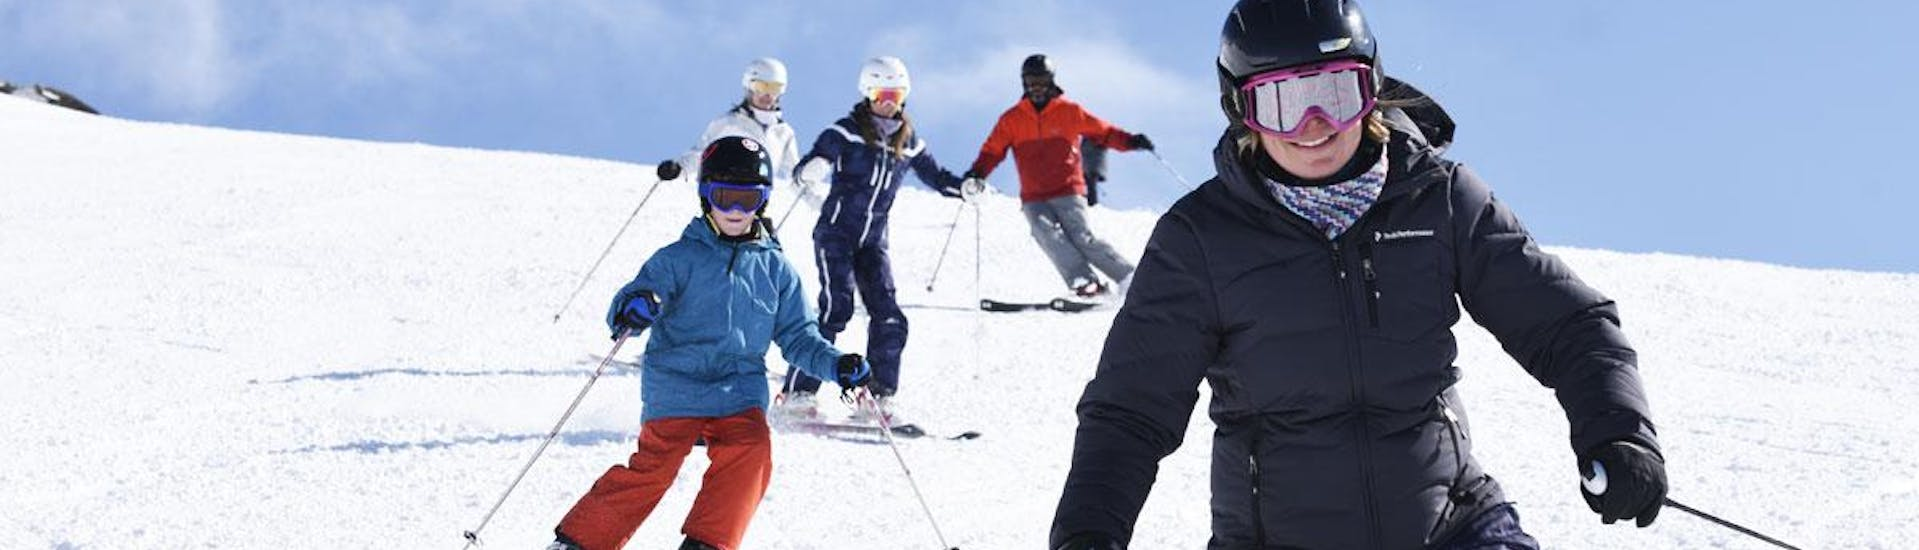 Ski Lessons for Kids (6-10 years) - All Levels